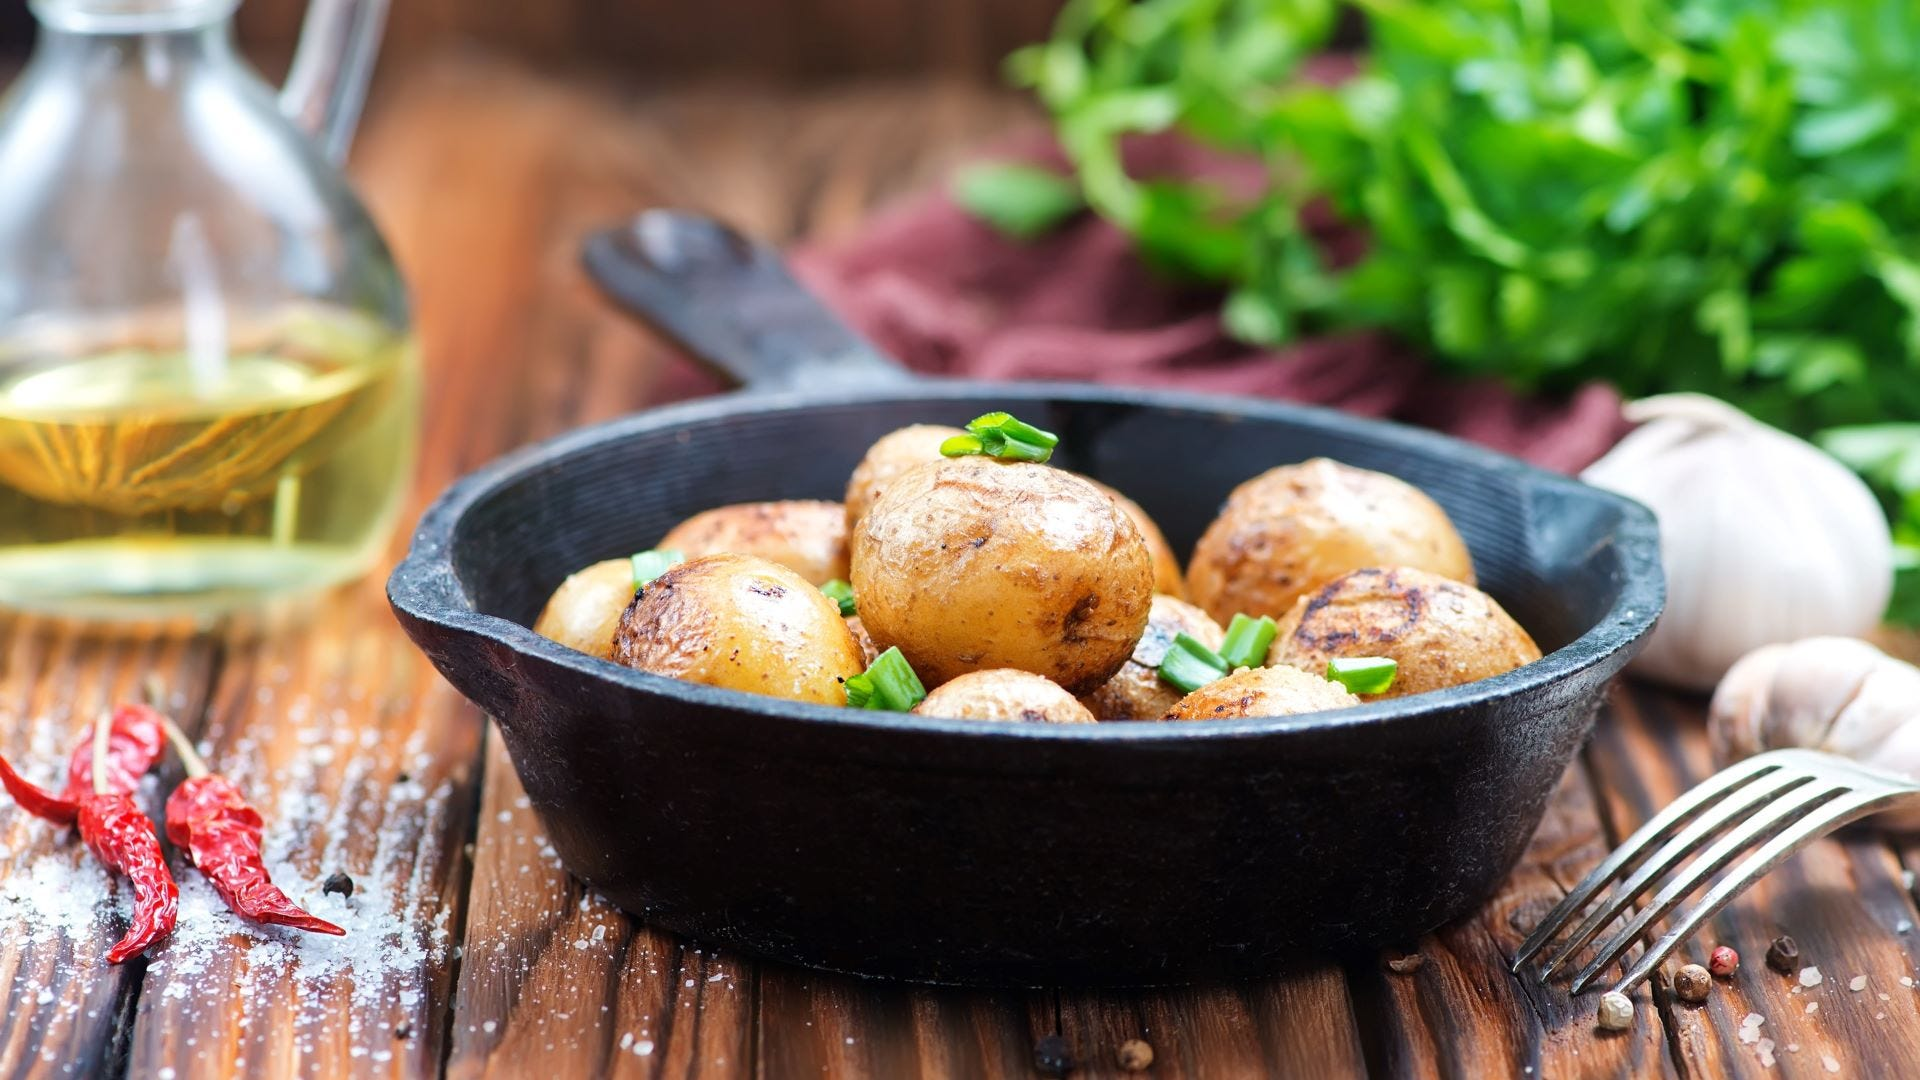 Potatoes in a cast-iron skillet.